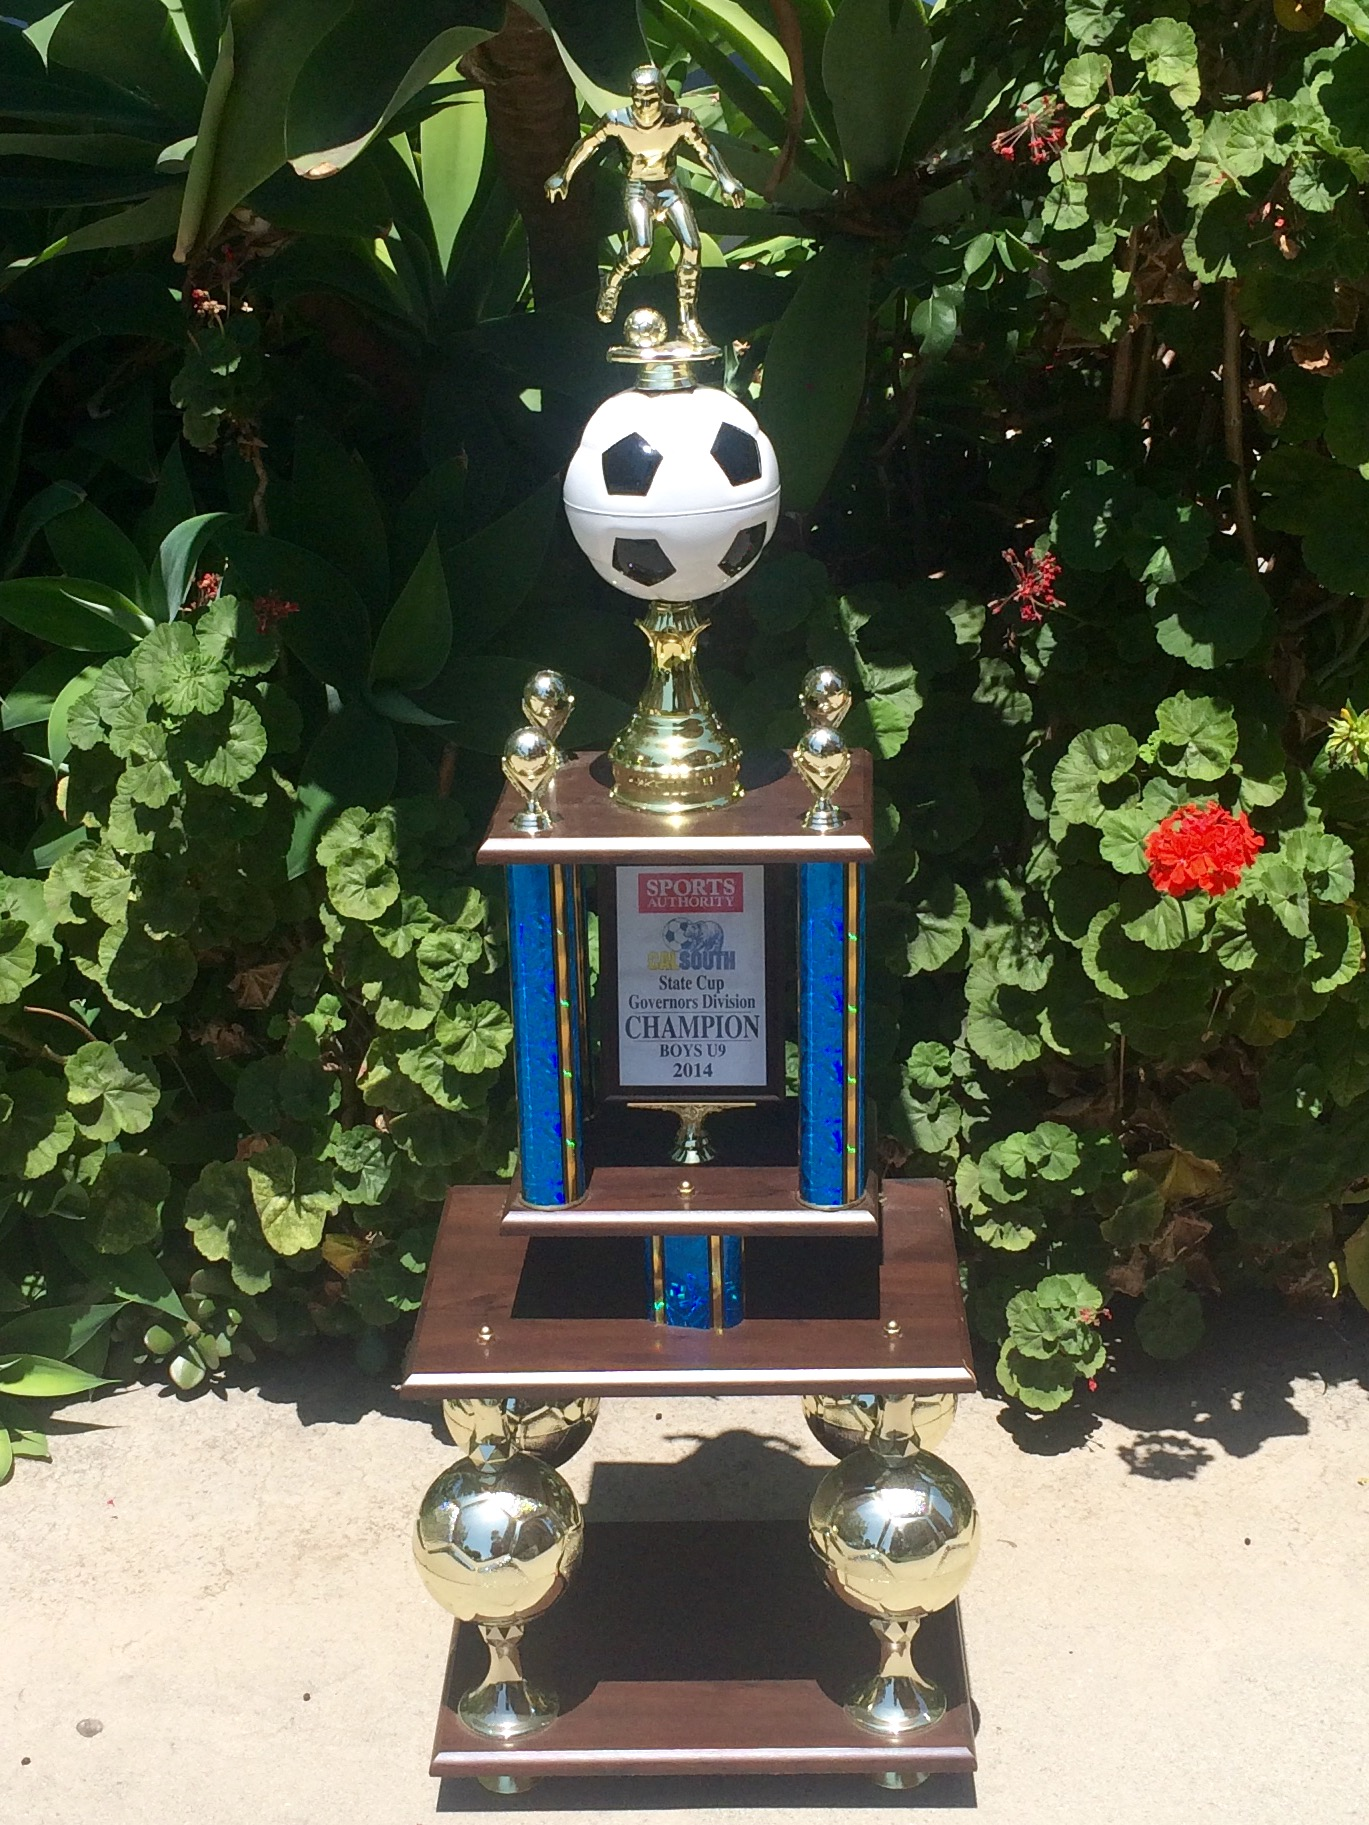 f5b61ef1 2014 State Cup Trophy - Courtesy of Omid Shokoufandeh